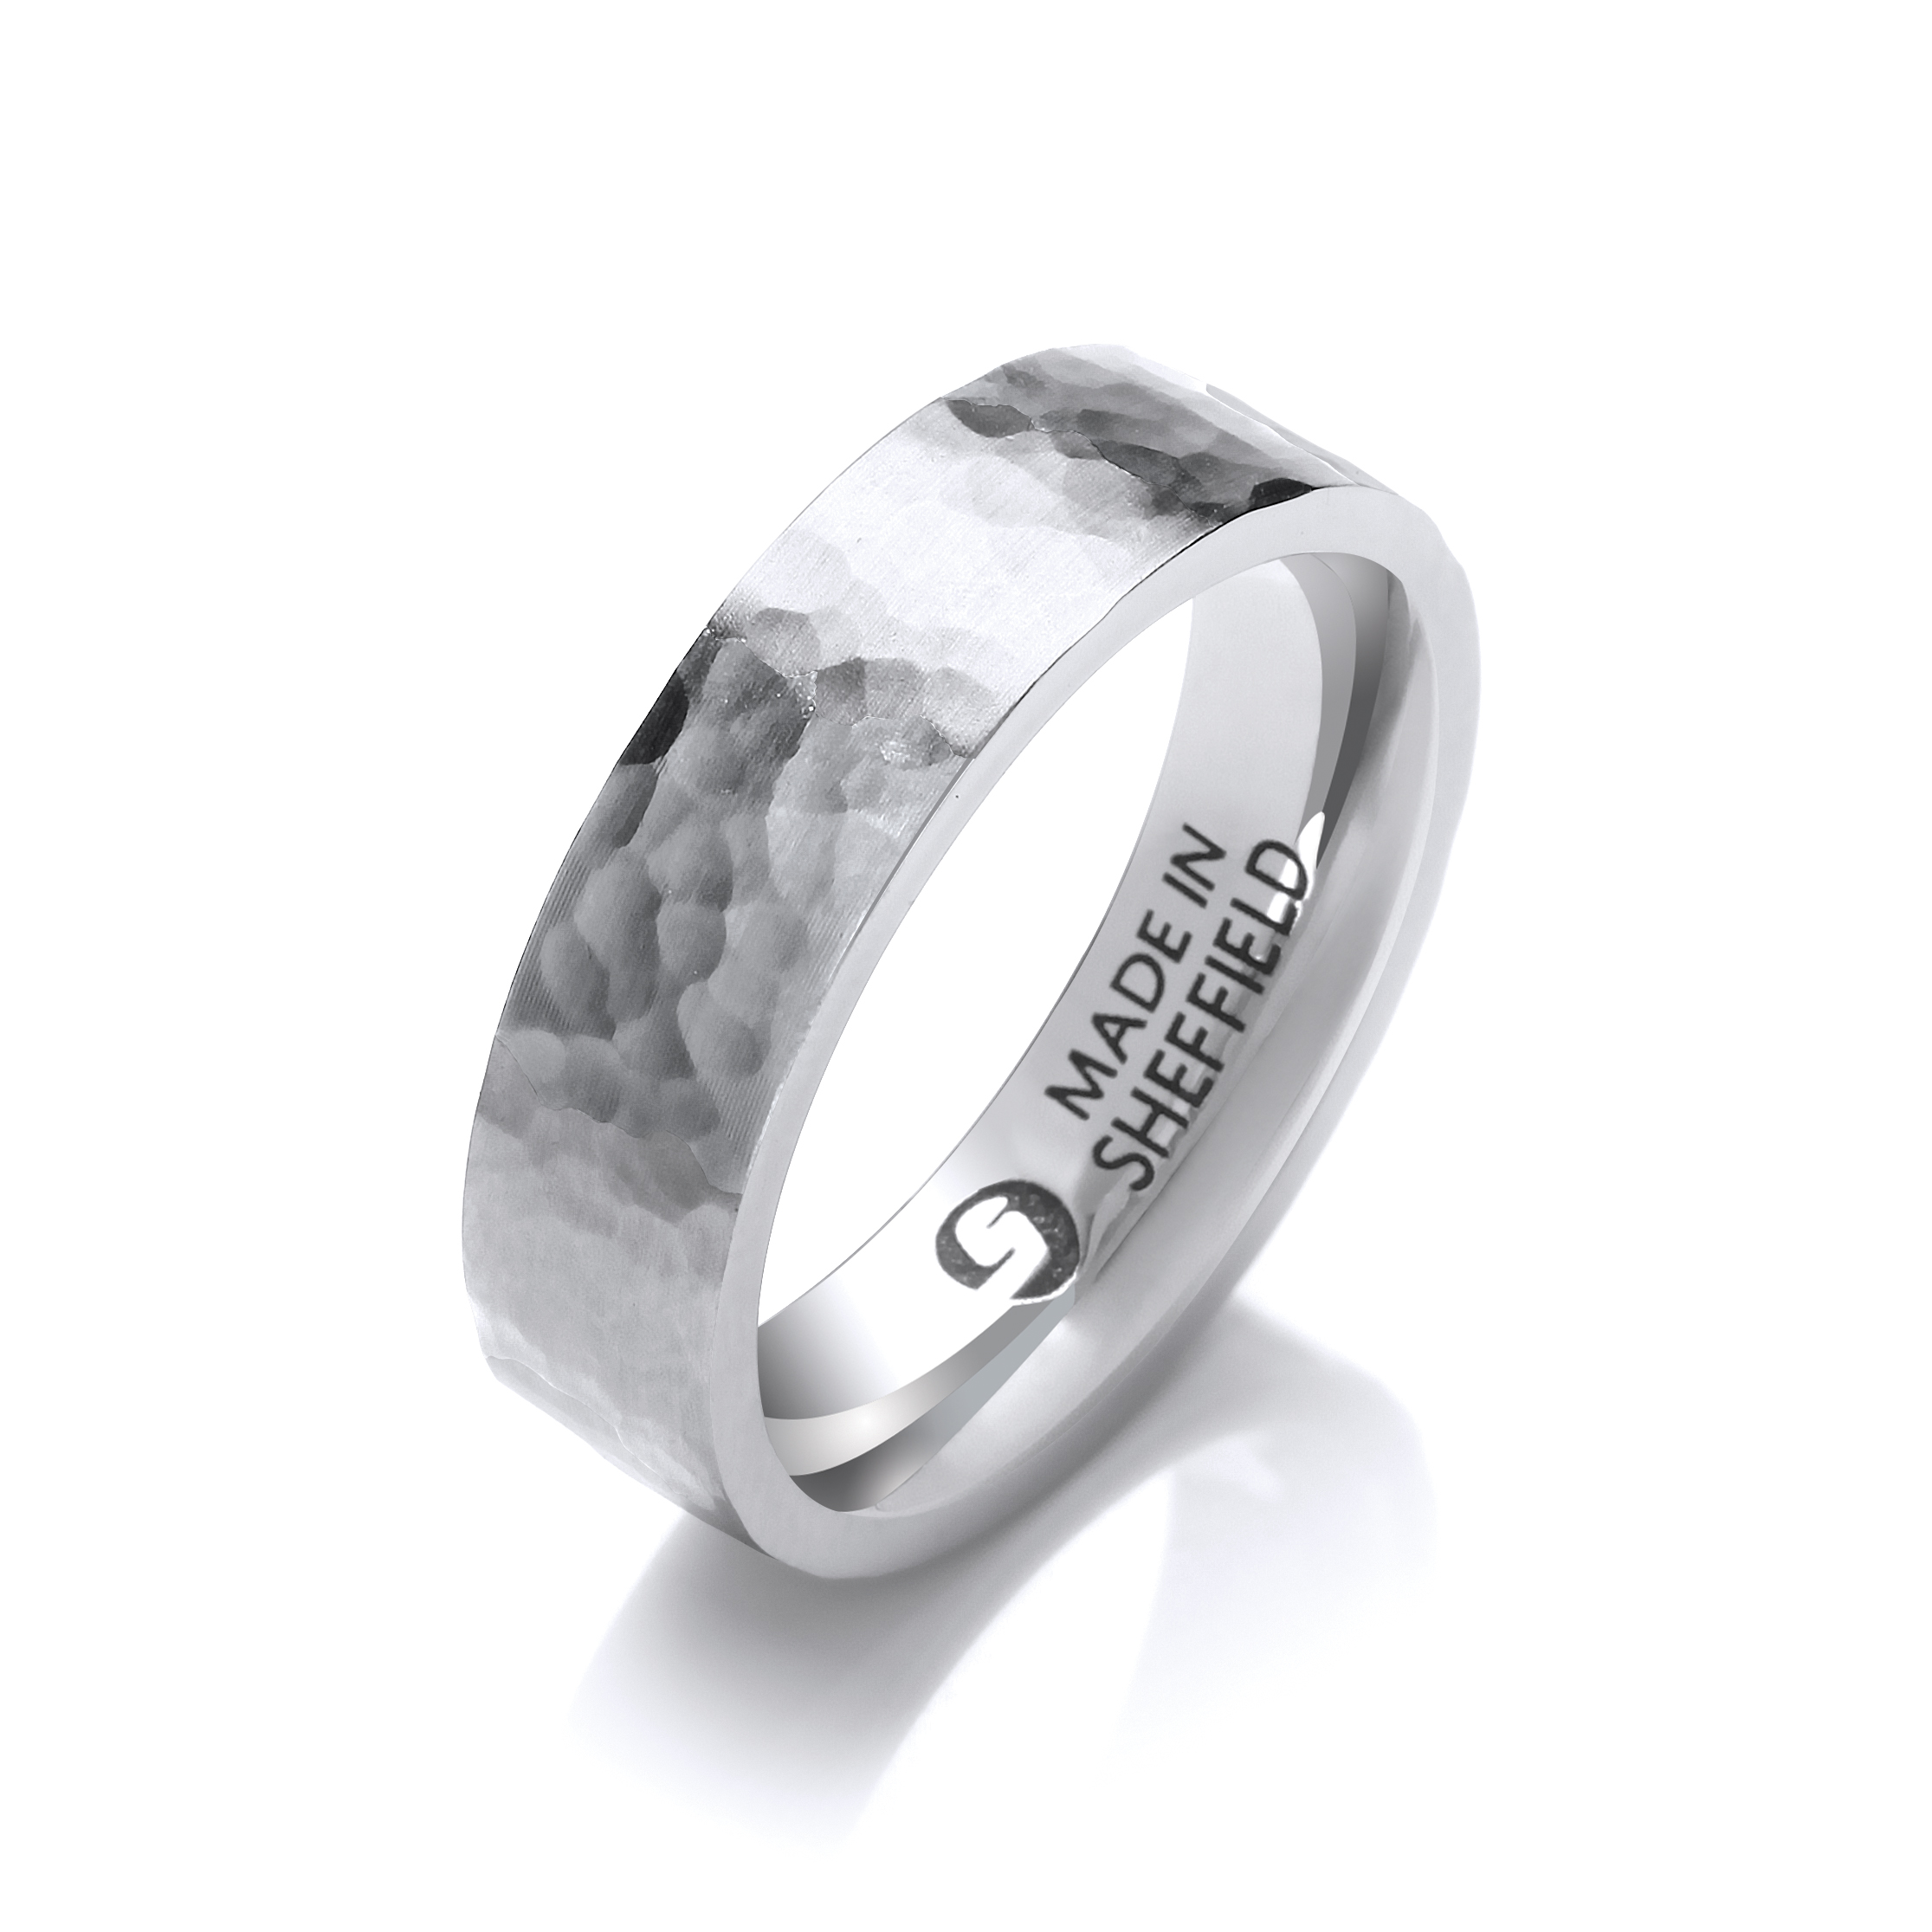 Sheffield steel wedding ring- The Tapton